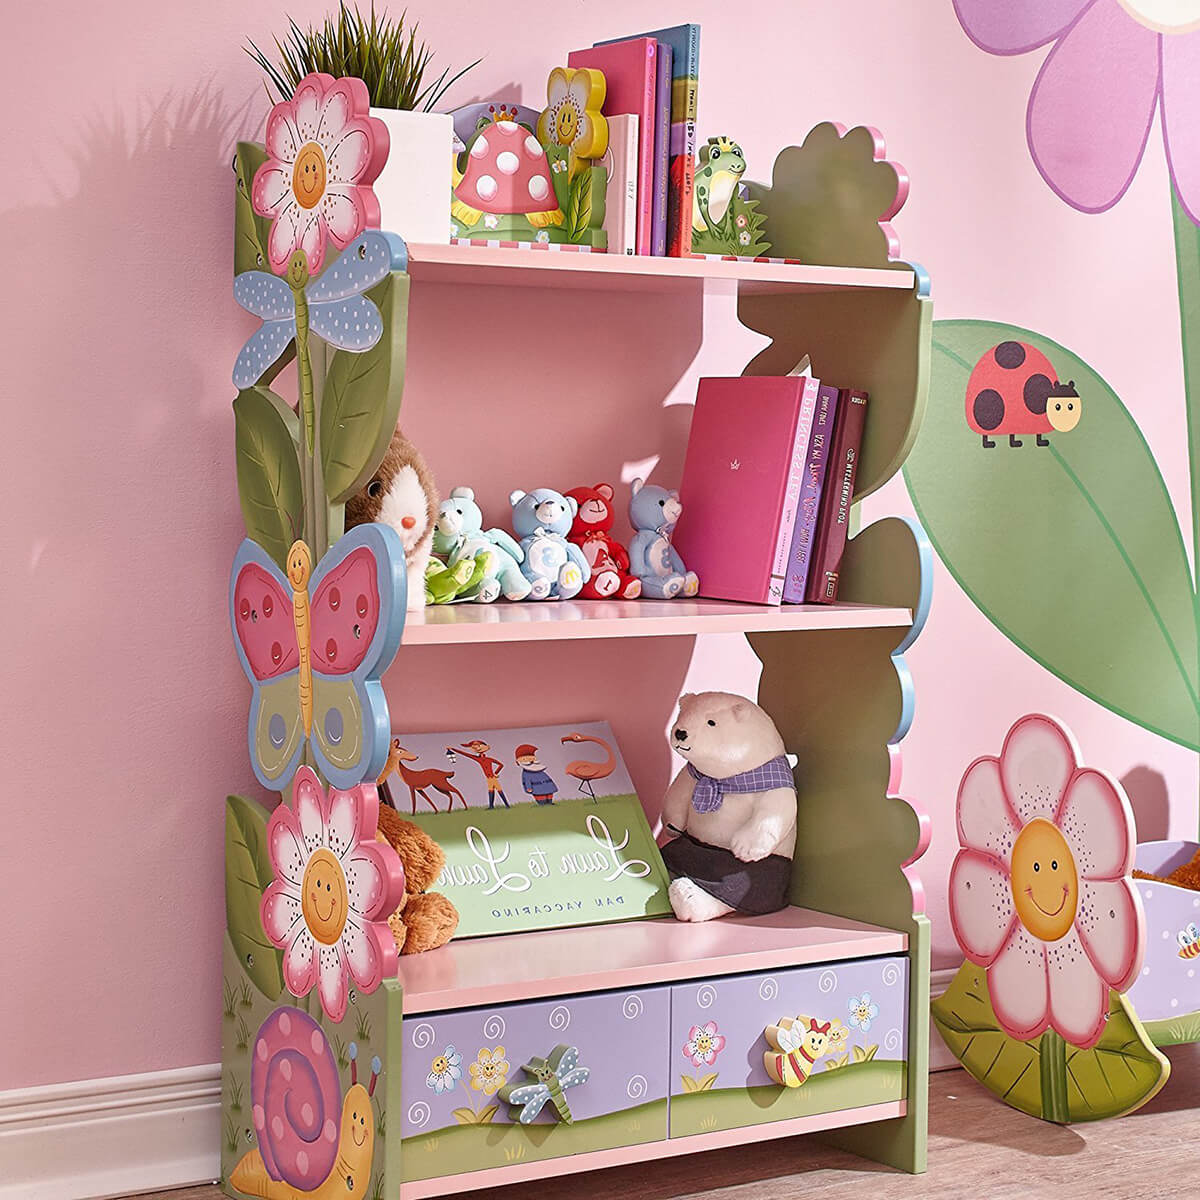 Dreamy and Magical Garden Bookcase